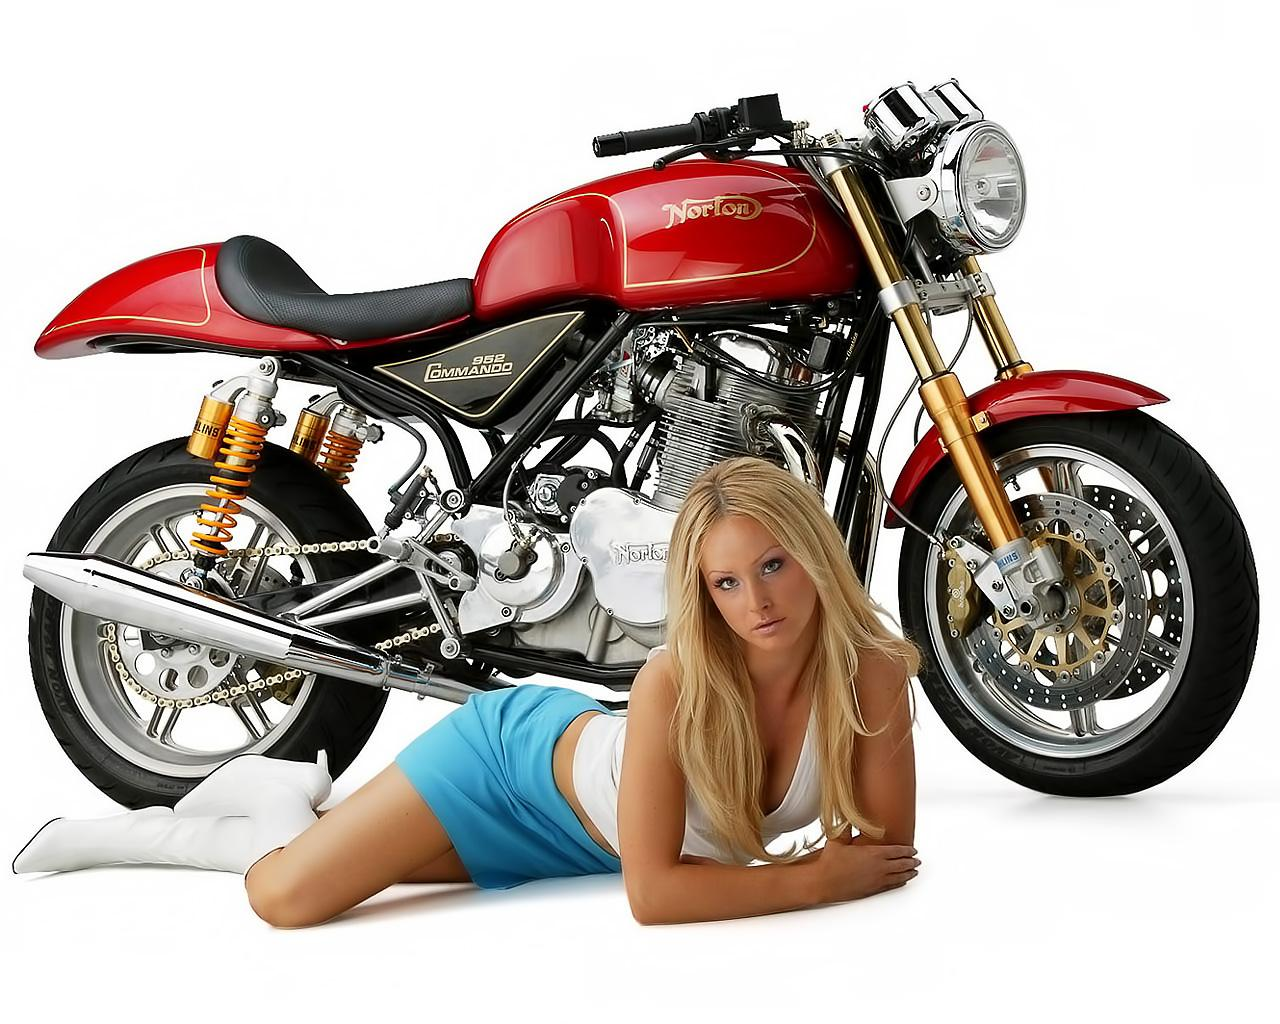 Обои Norton 952 Commando and Babe 1280x1024